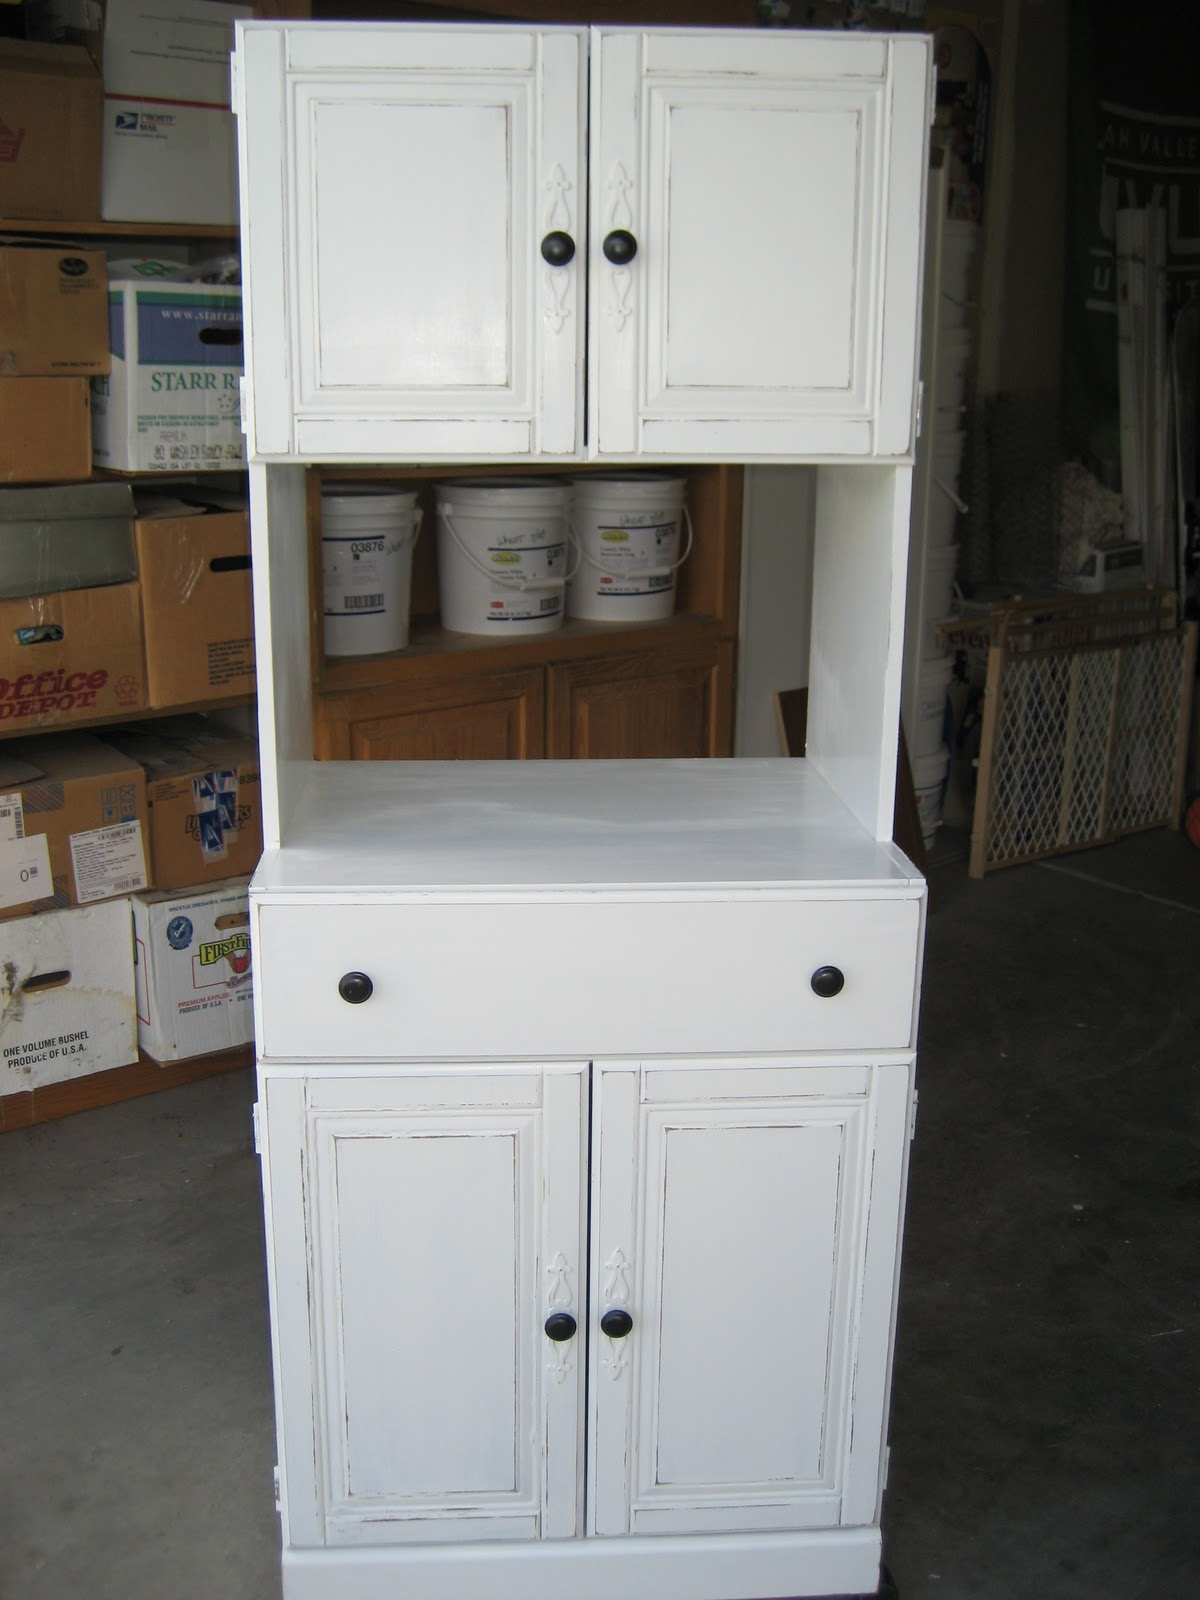 Countertop Microwave Stand : Paint Me Shabby: Microwave Stand Turned Bill and Junk Collector!